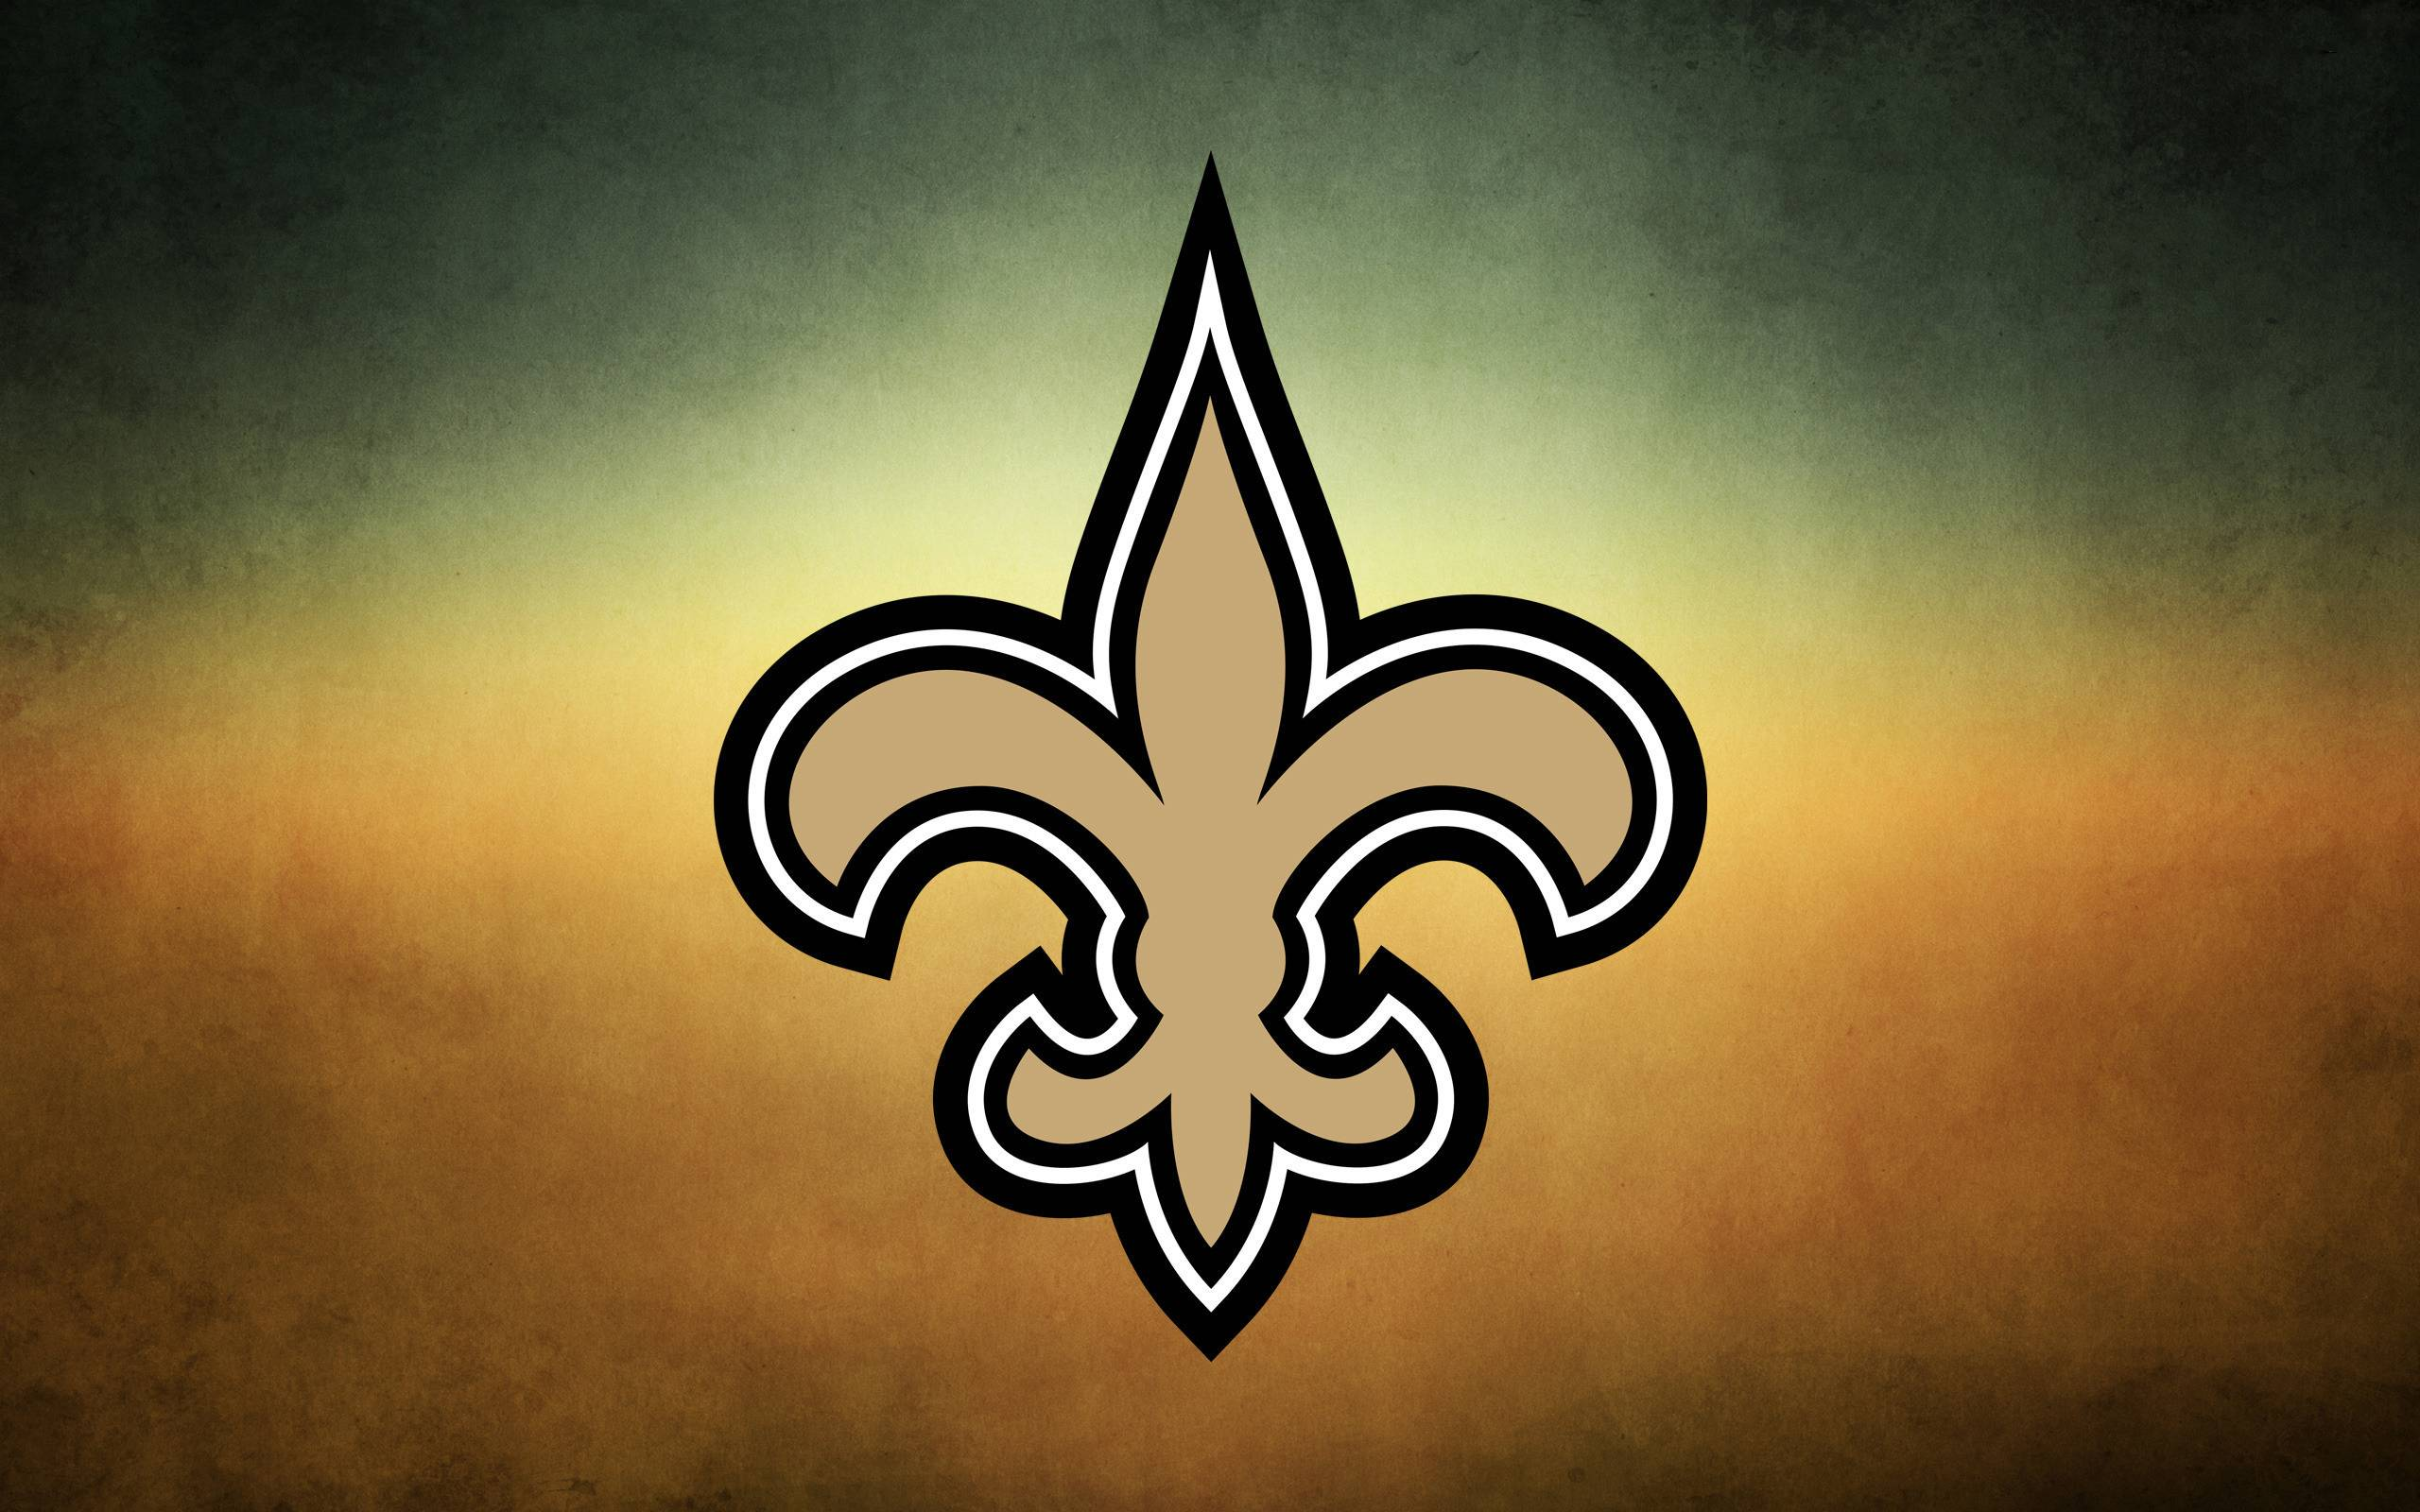 10 Hd New Orleans Saints Wallpapers